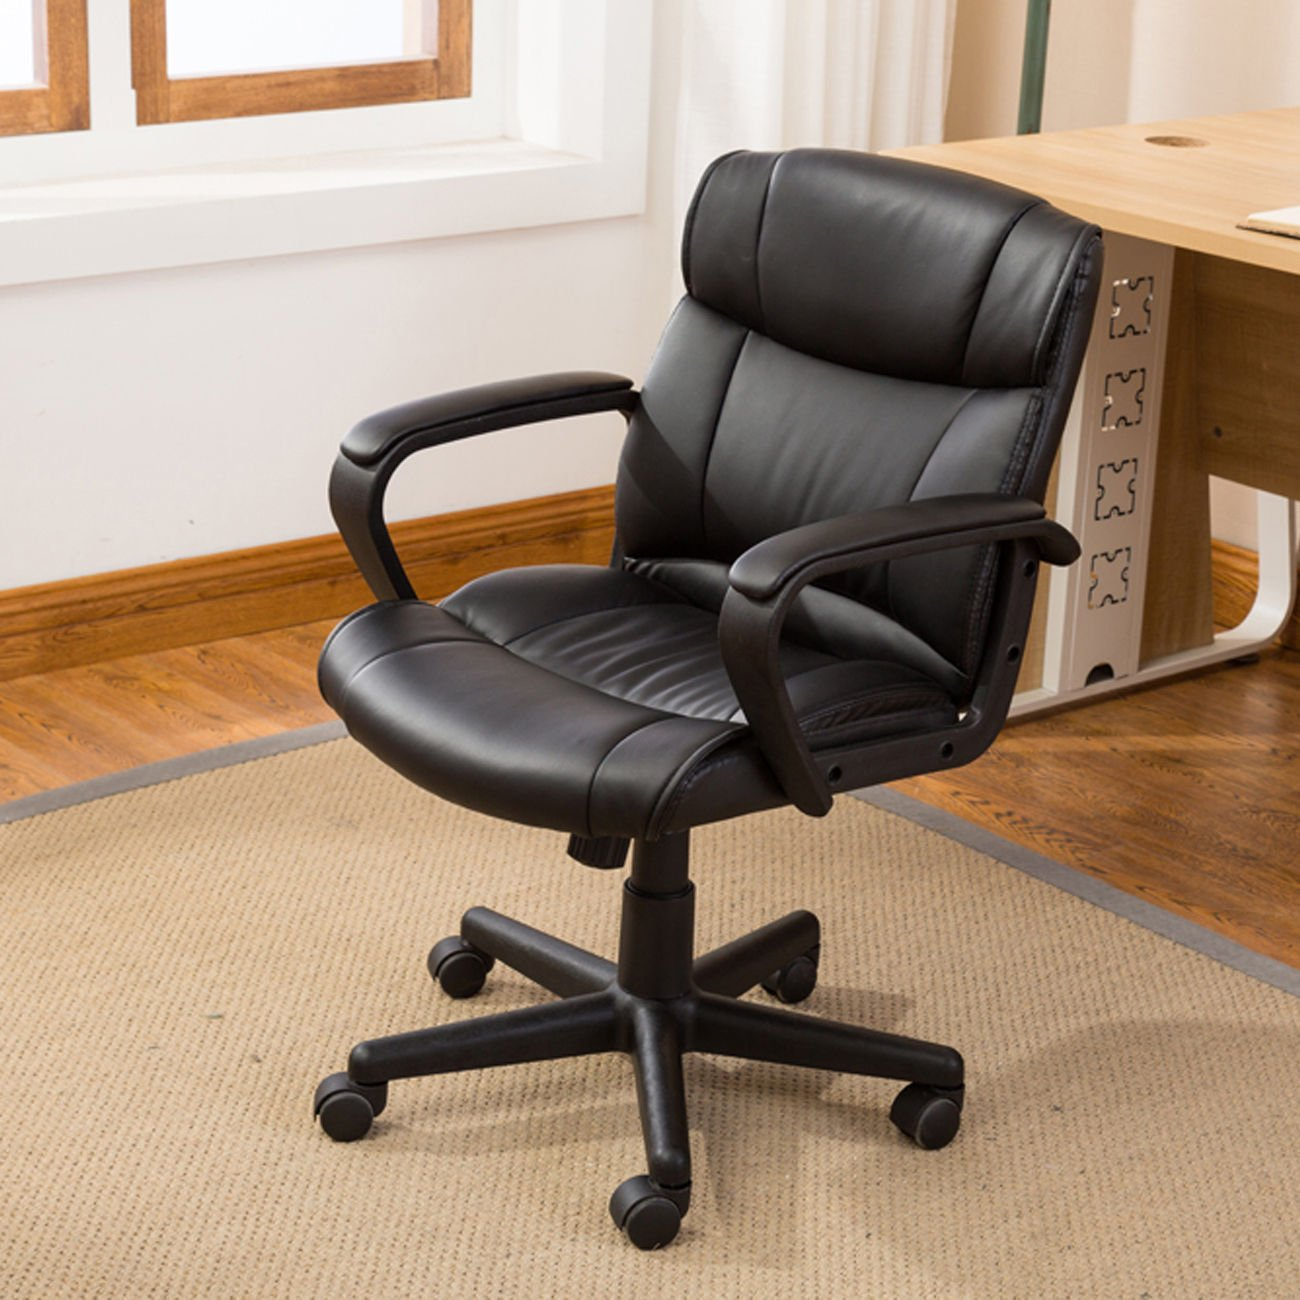 Mid-Back Ergonomic PU Leather Executive Computer Desk Task Office Chair Black